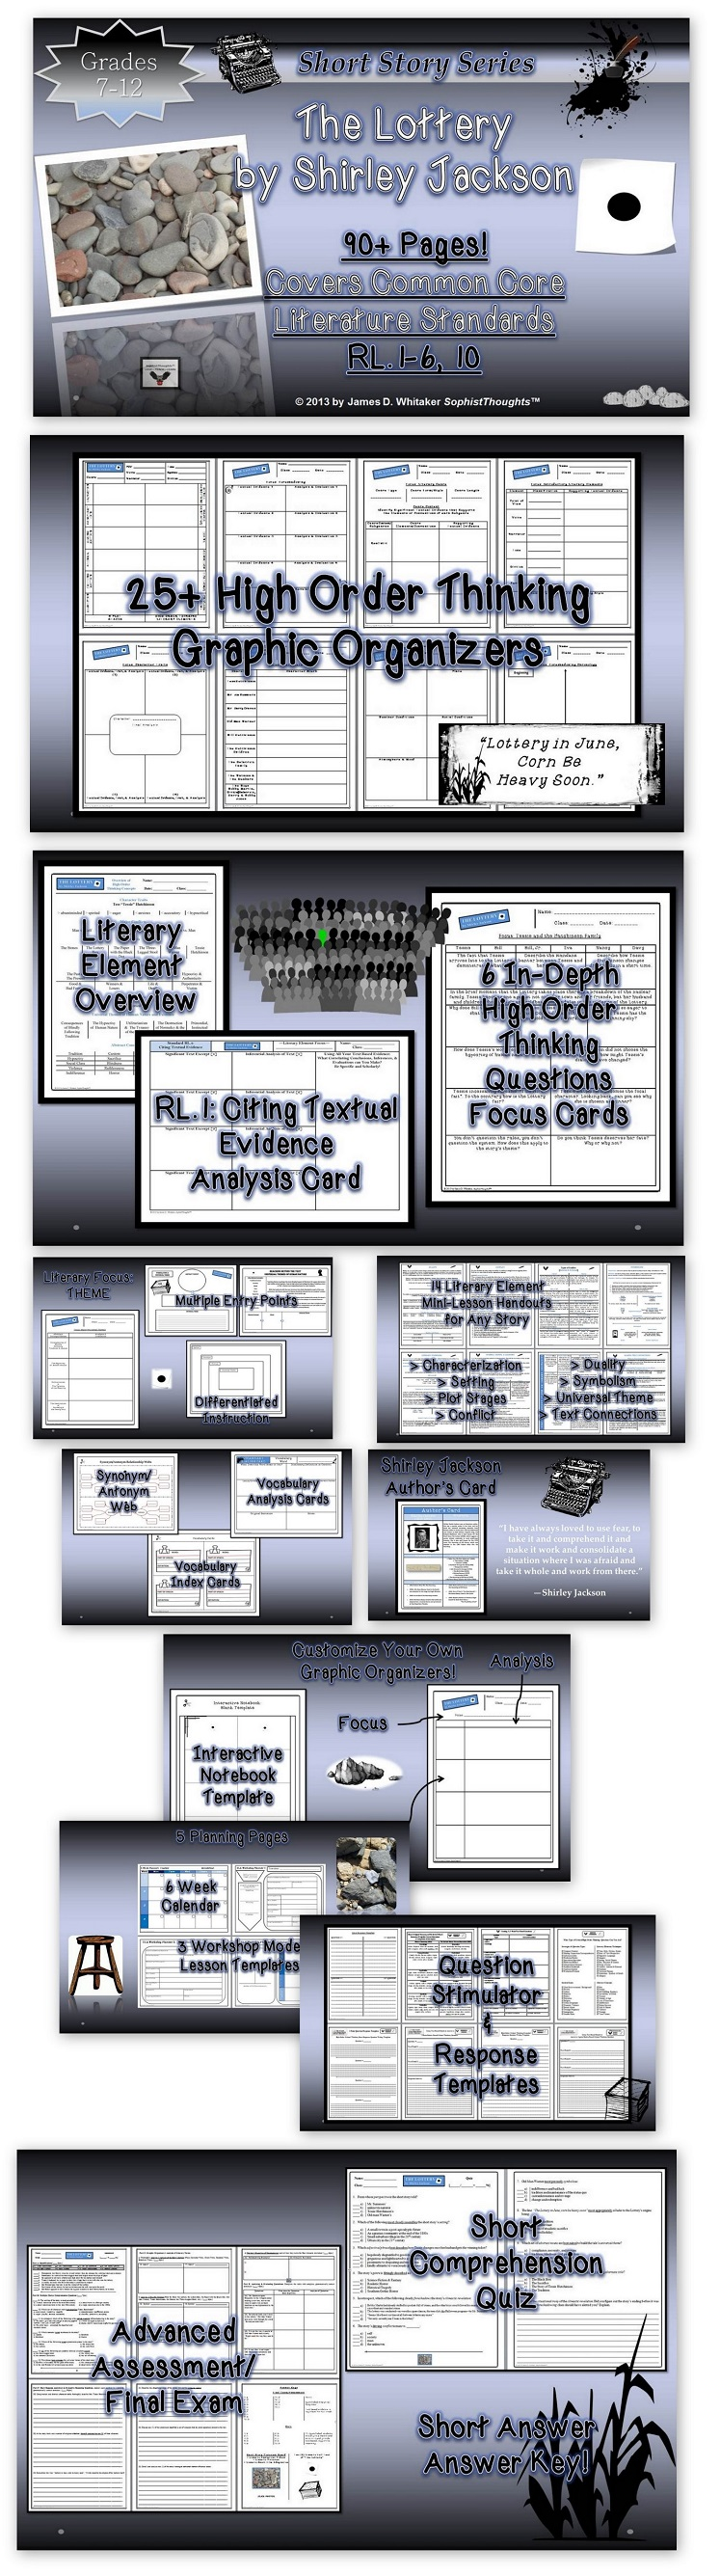 plot and central idea shirley jackson s lottery The lottery and other stories study guide contains a biography of author shirley jackson, literature essays, quiz questions, major themes, characters, and a full summary and analysis.